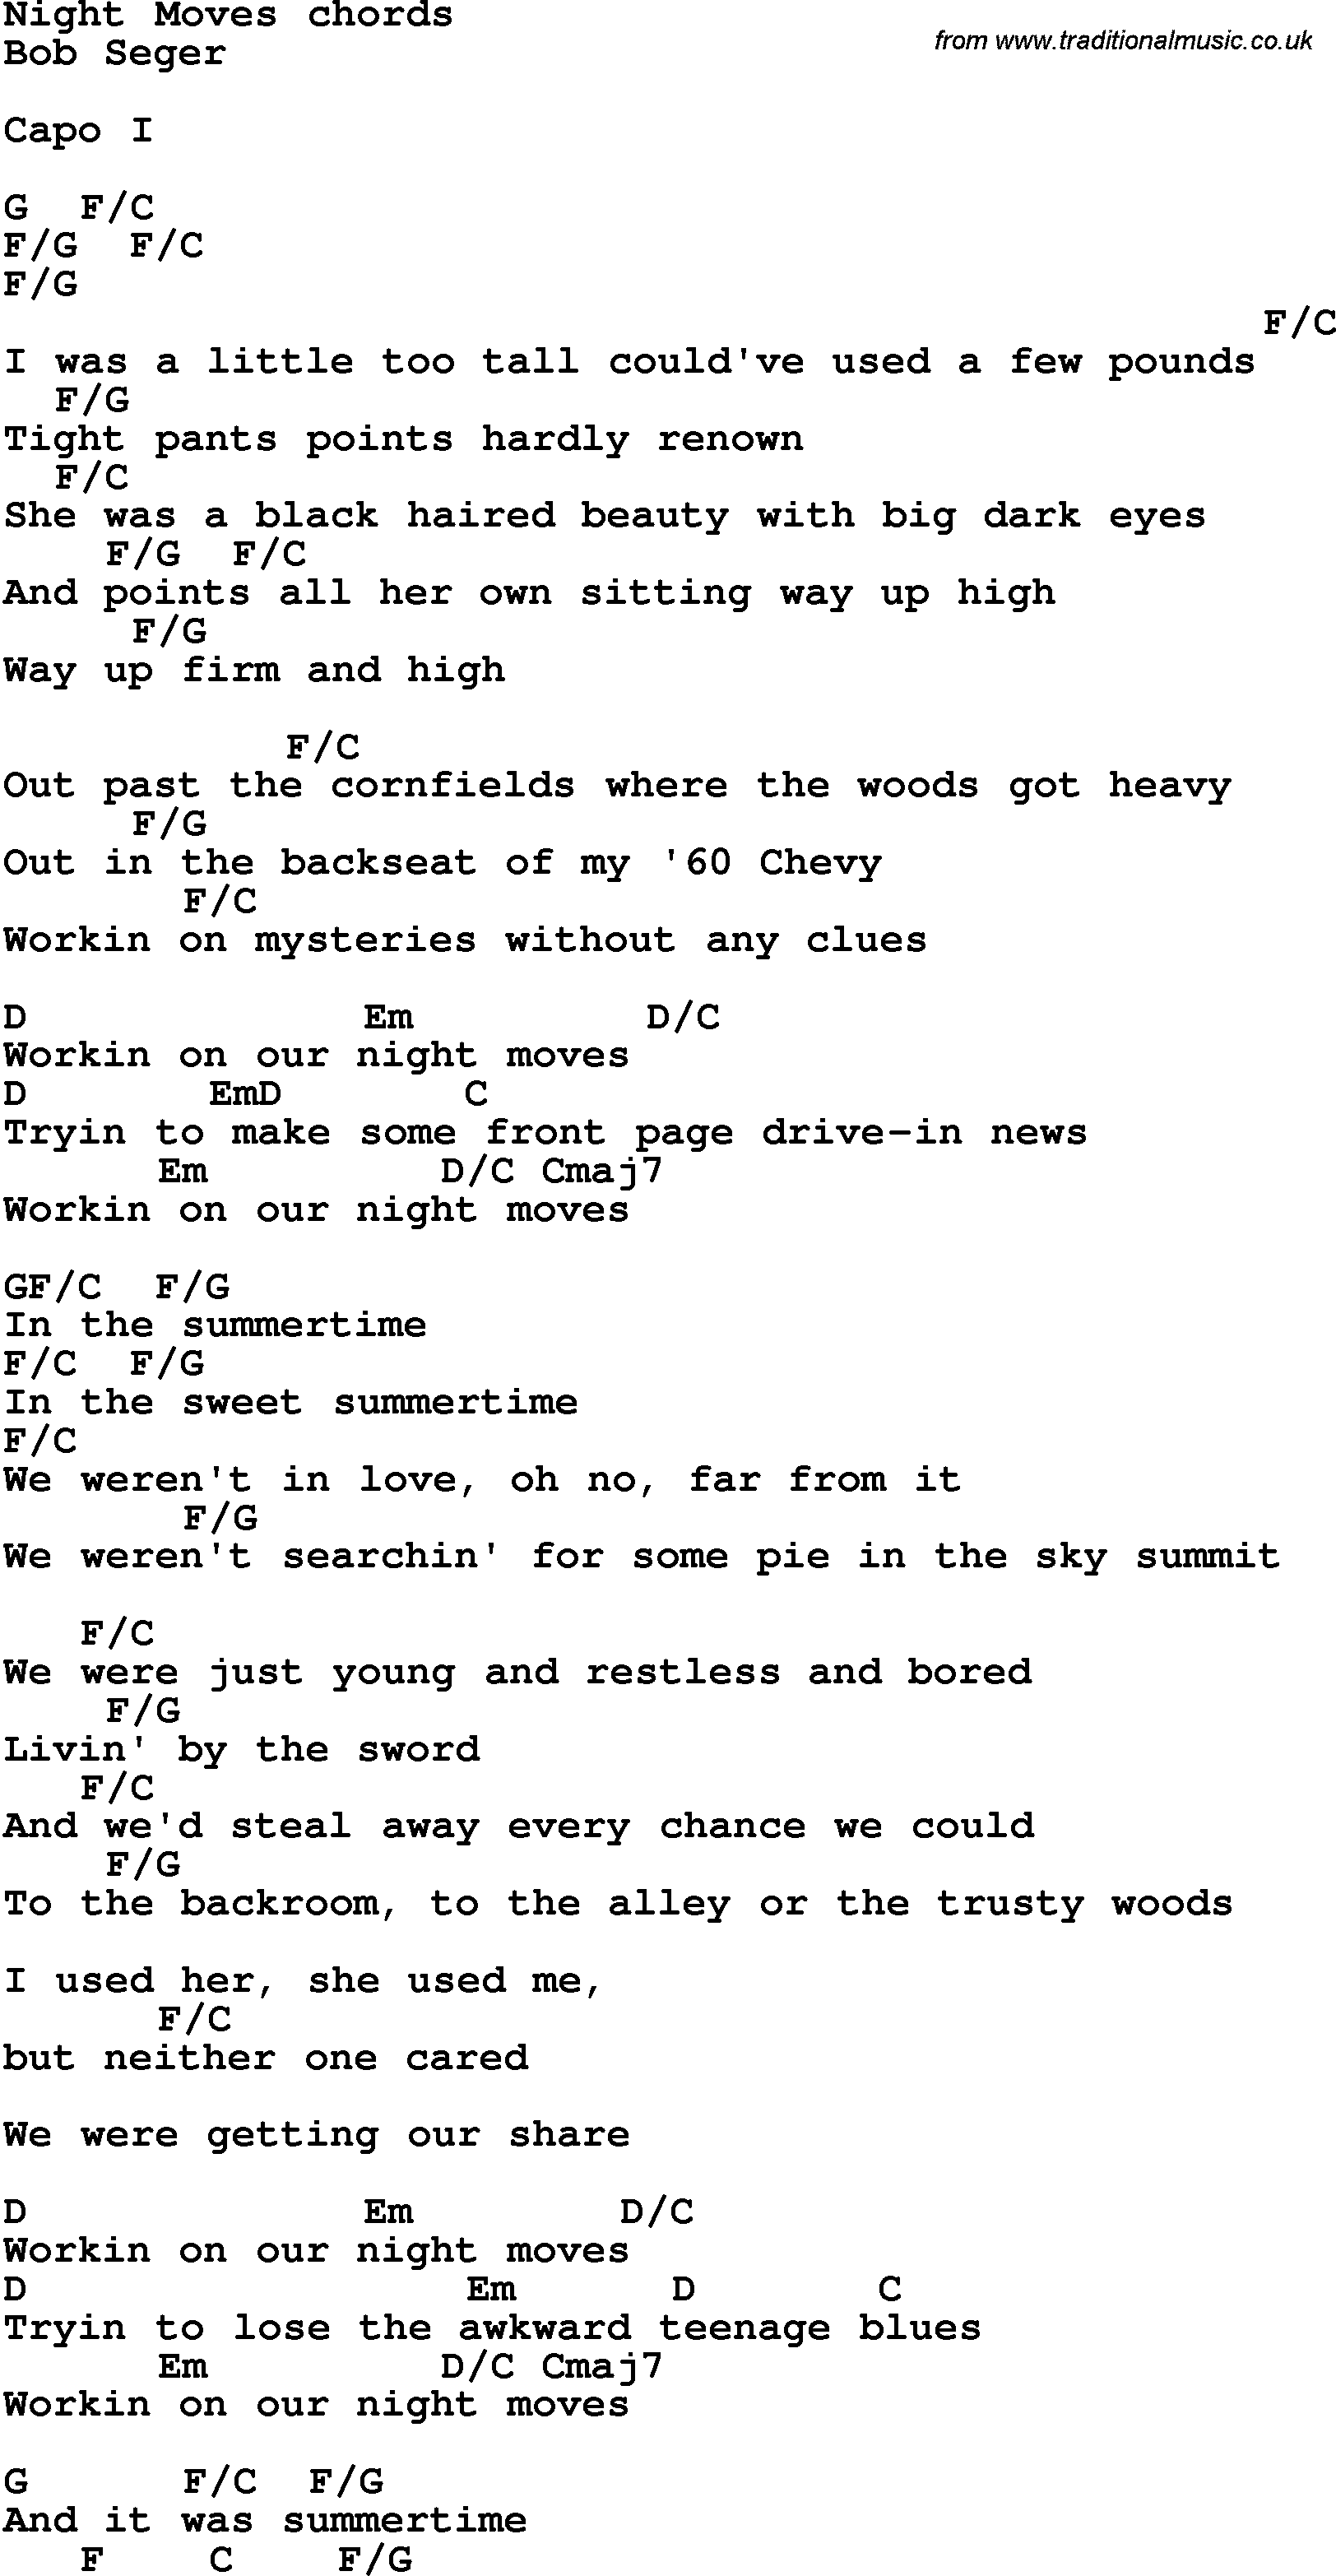 Night Moves Chords 2015confession